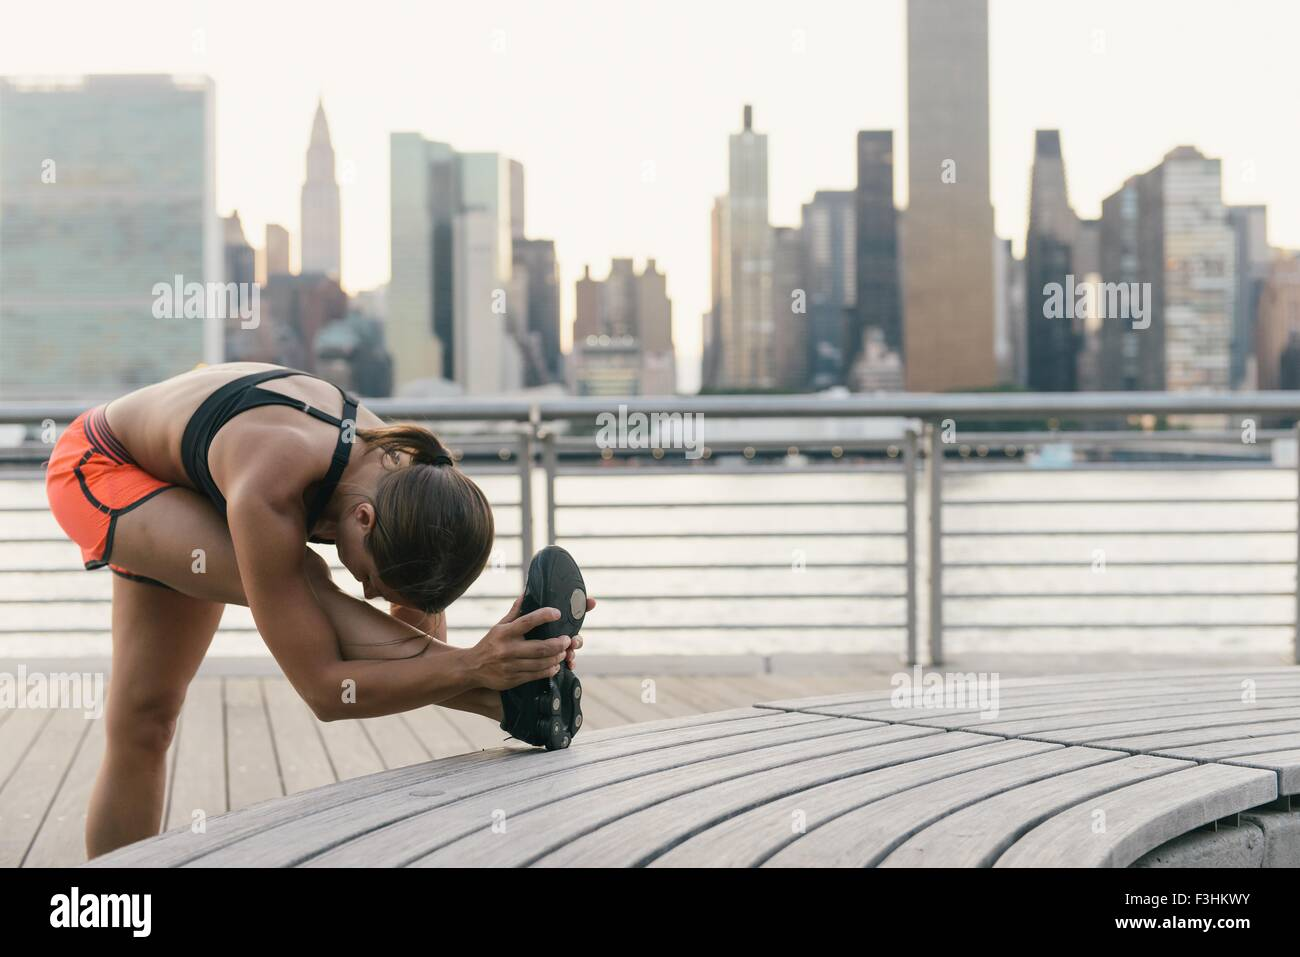 Young woman in running clothes next to river stretching before exercise Stock Photo